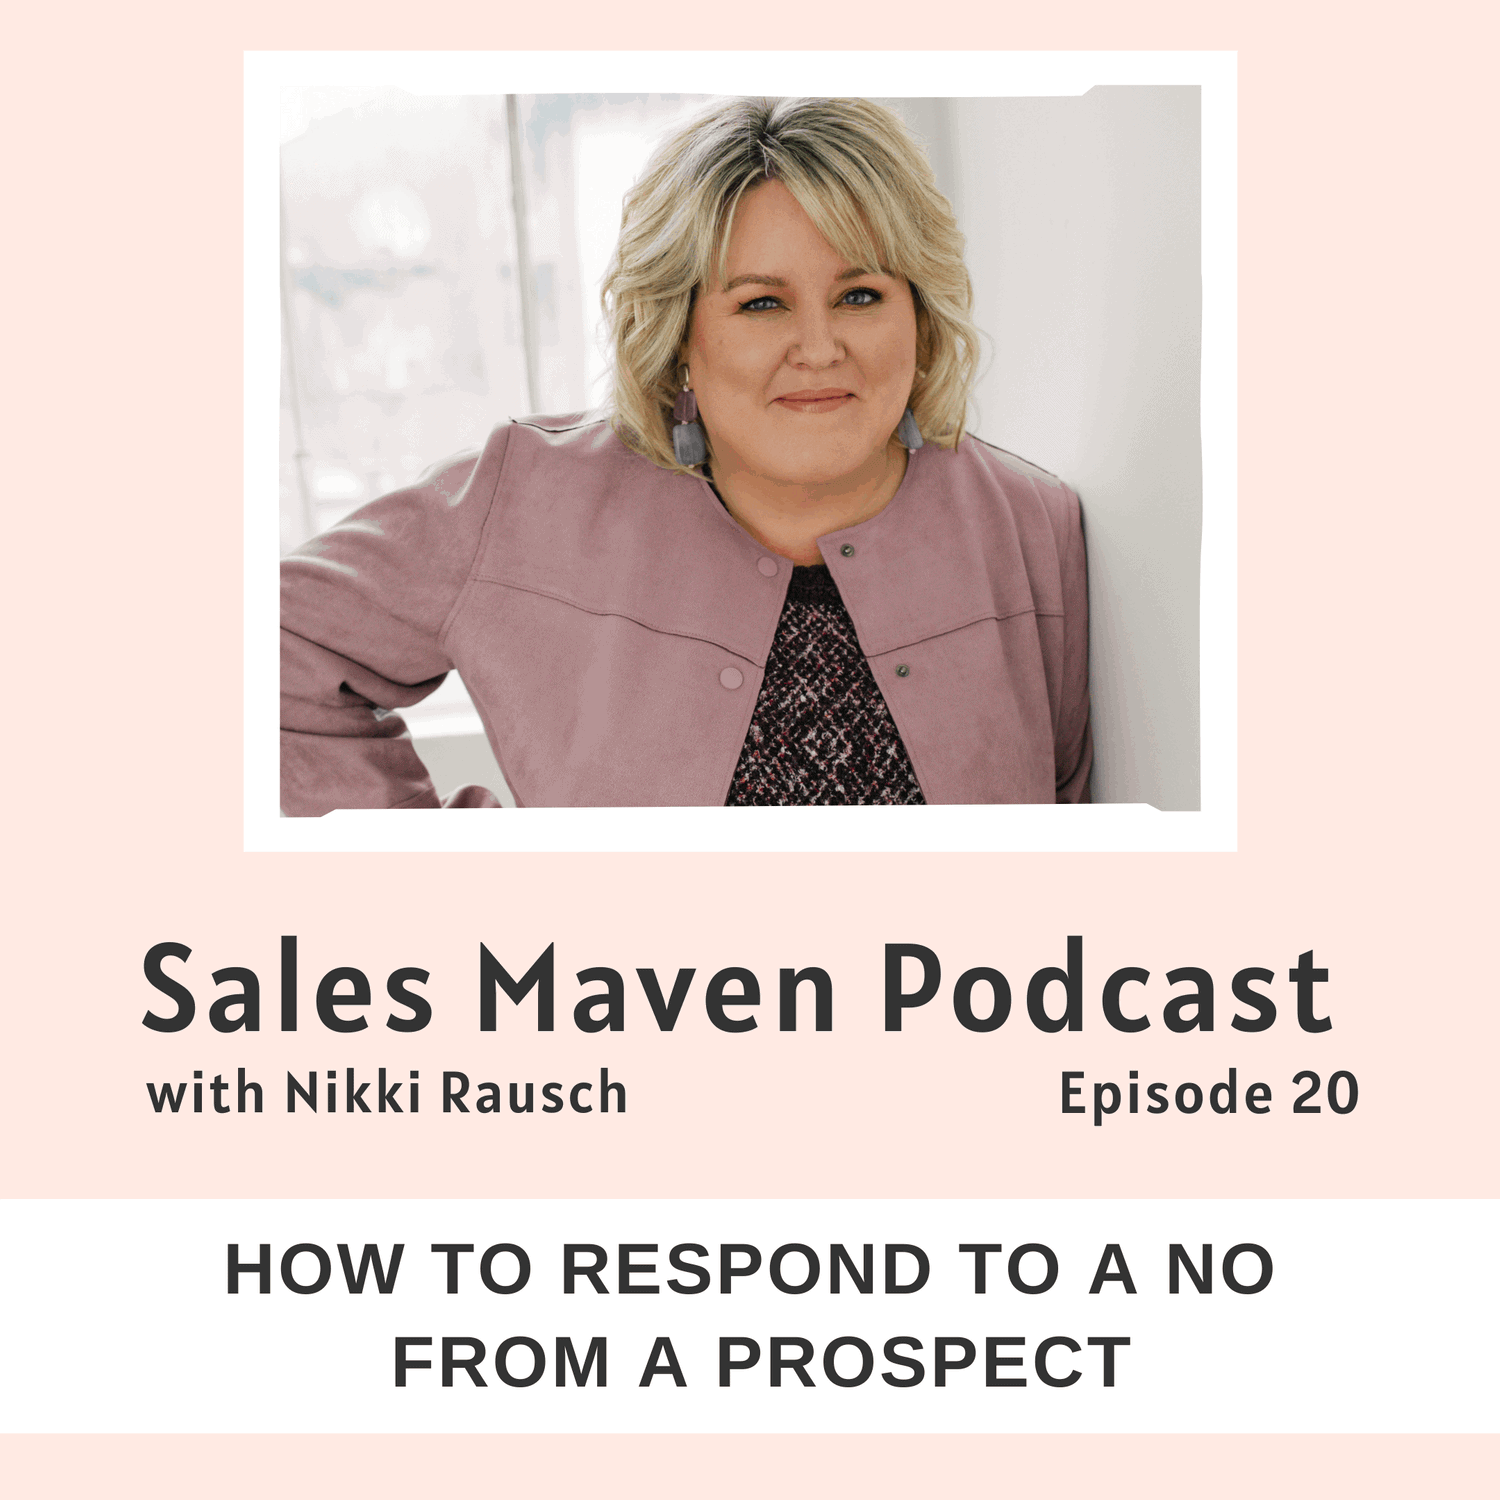 How to respond to a no from a prospect - Sales Maven Podcast